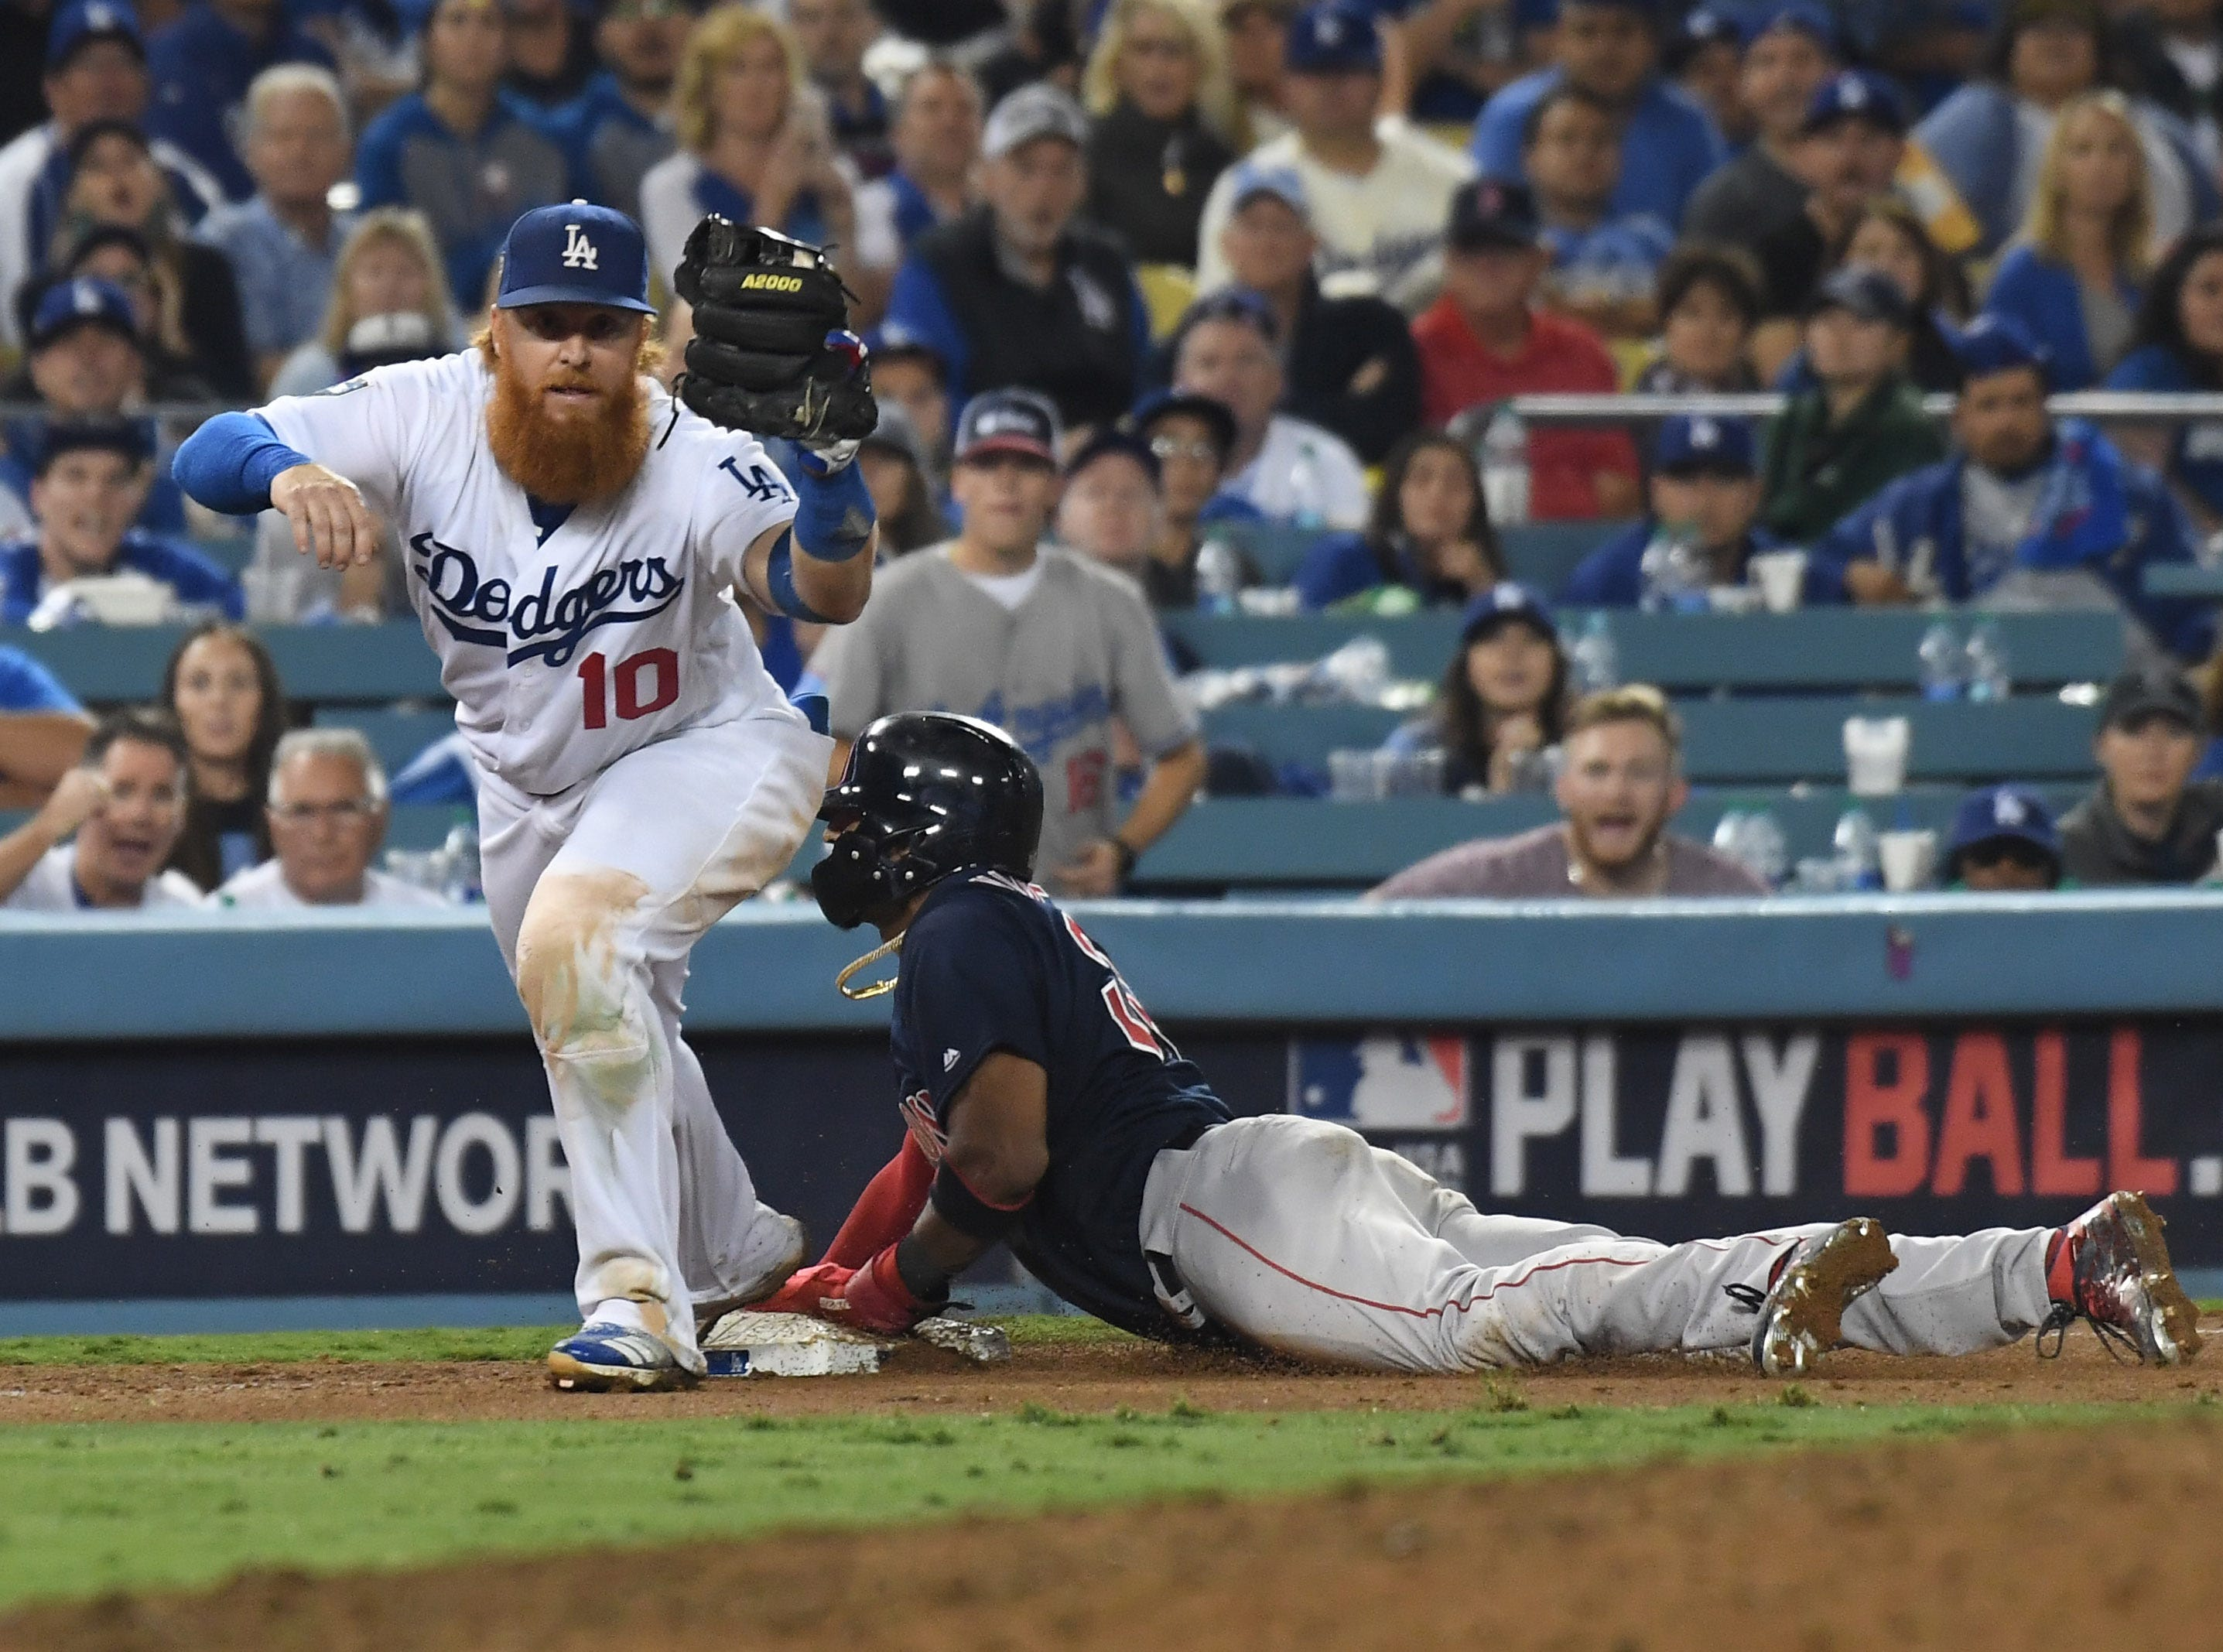 Game 3 at Dodger Stadium: Eduardo Nunez is forced out at a third in the top of the 15th.